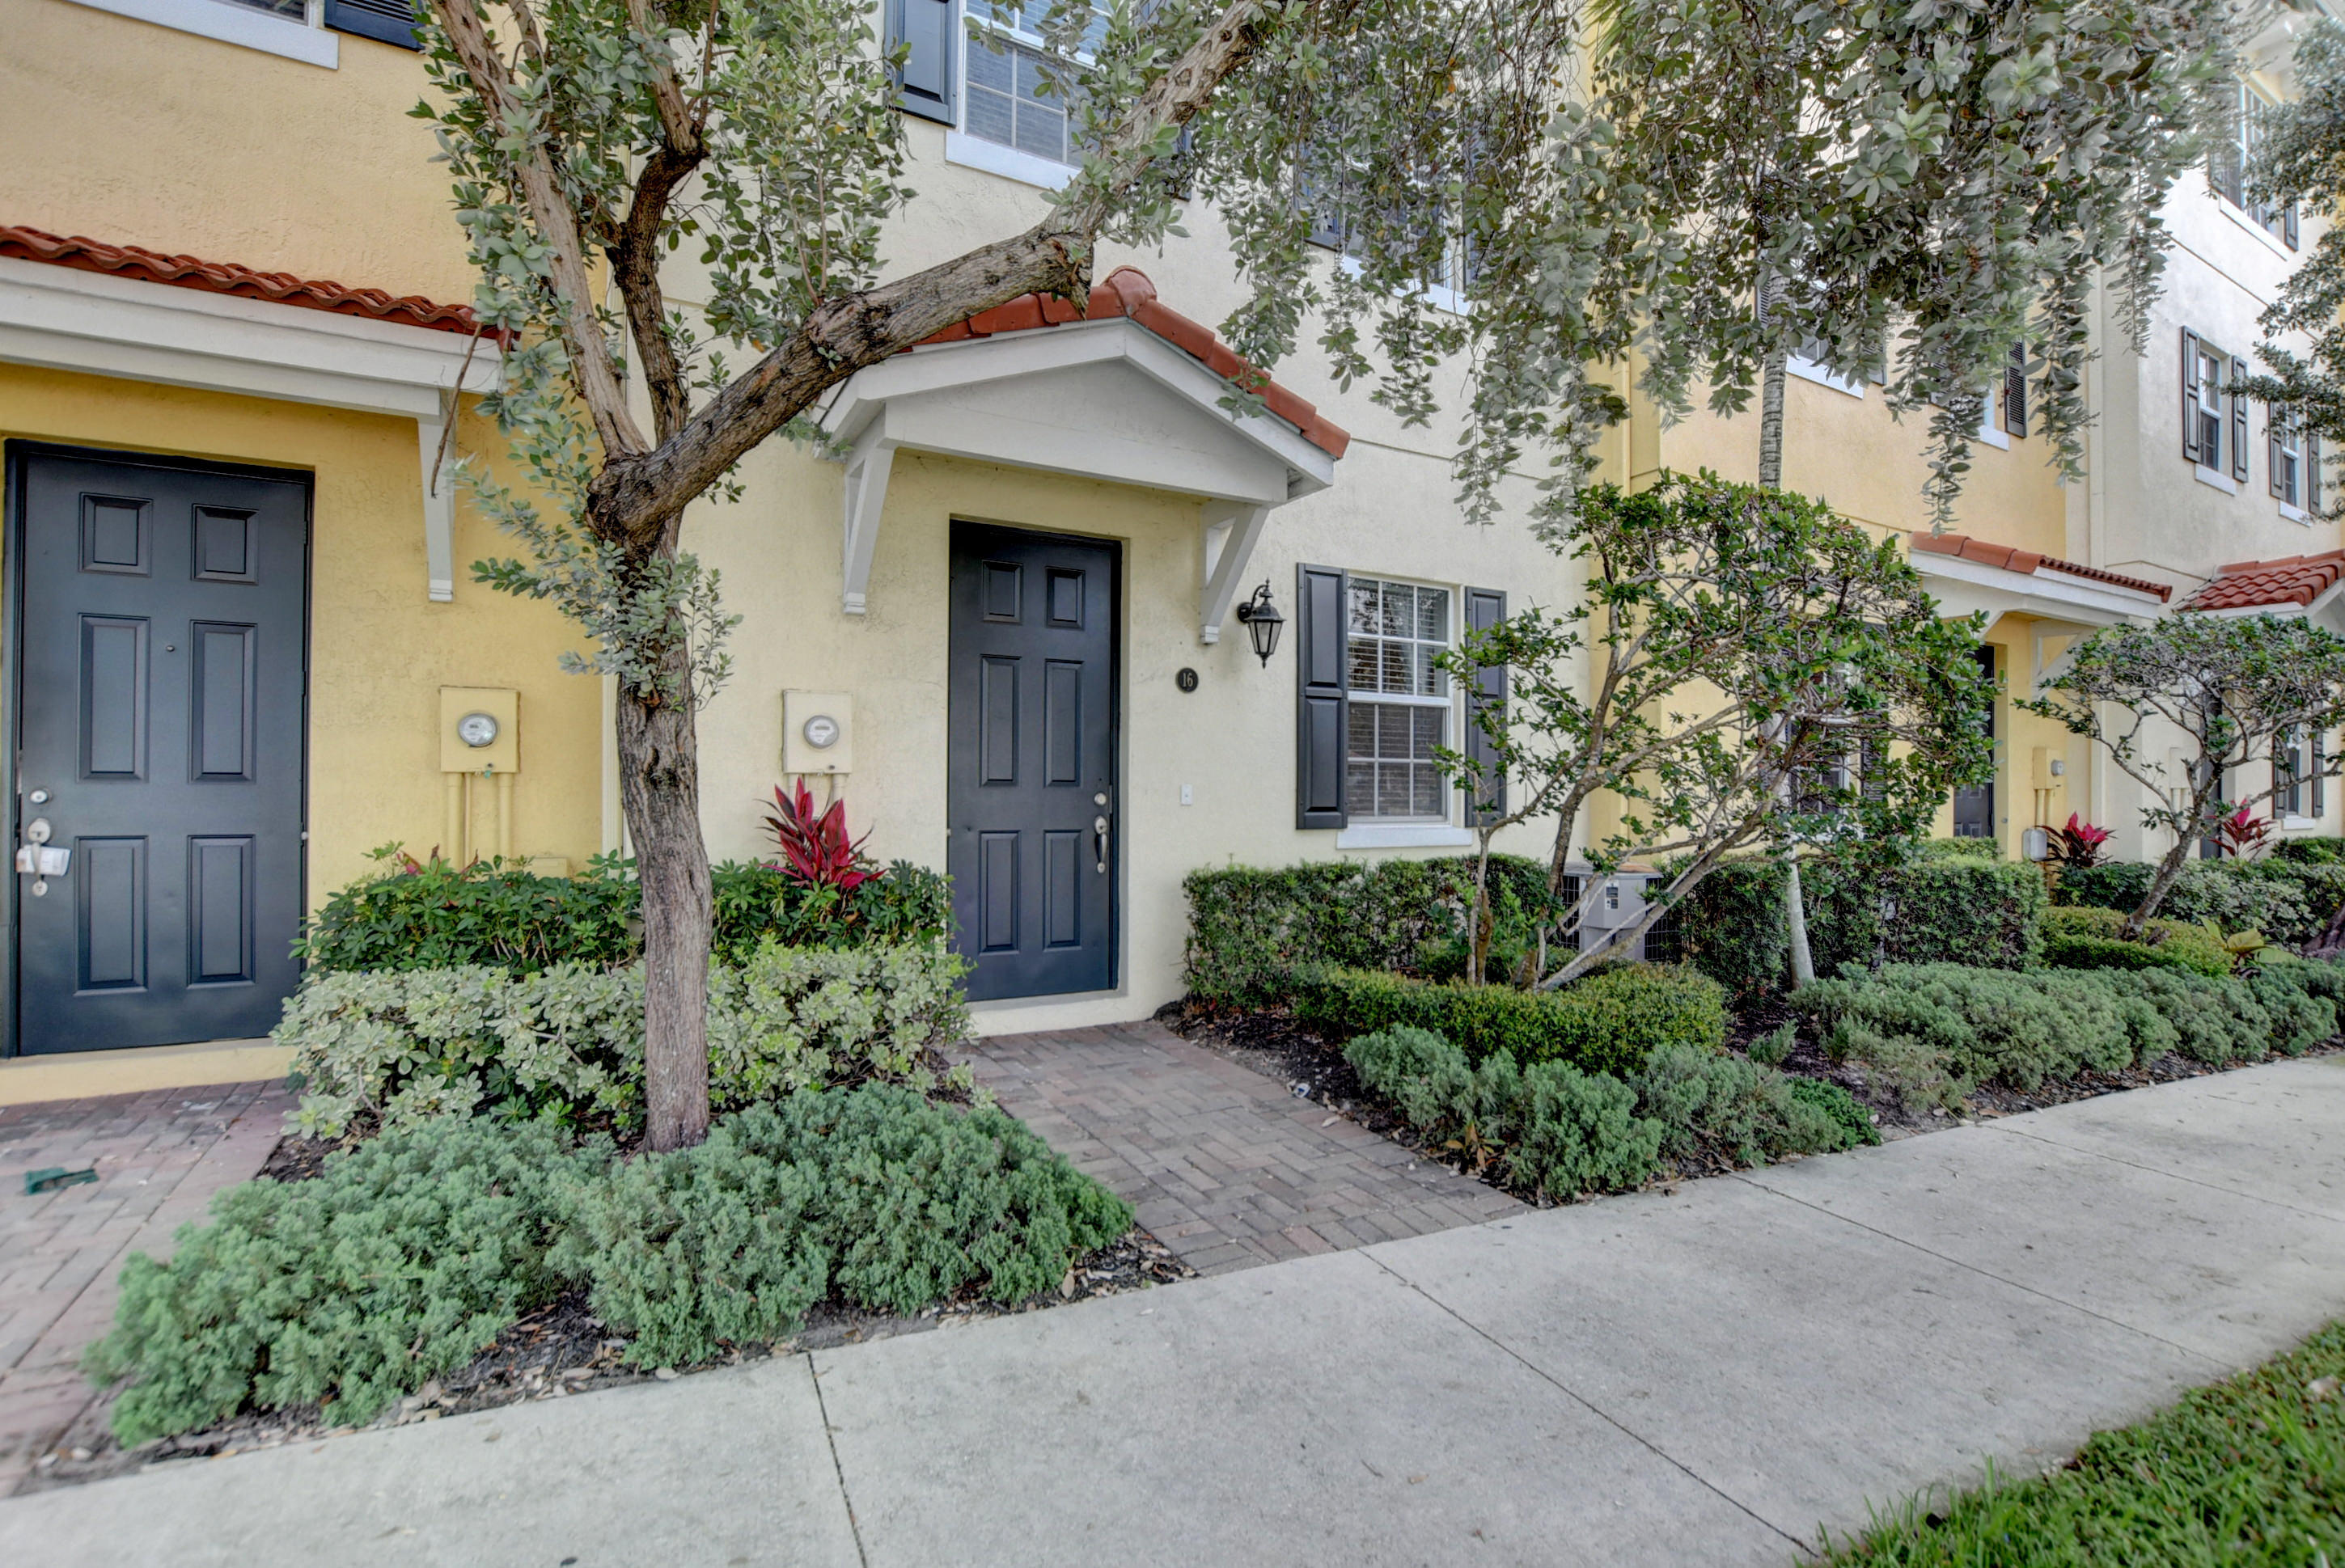 Home for sale in Courtyards of Lake Worth at College Park Lake Worth Florida